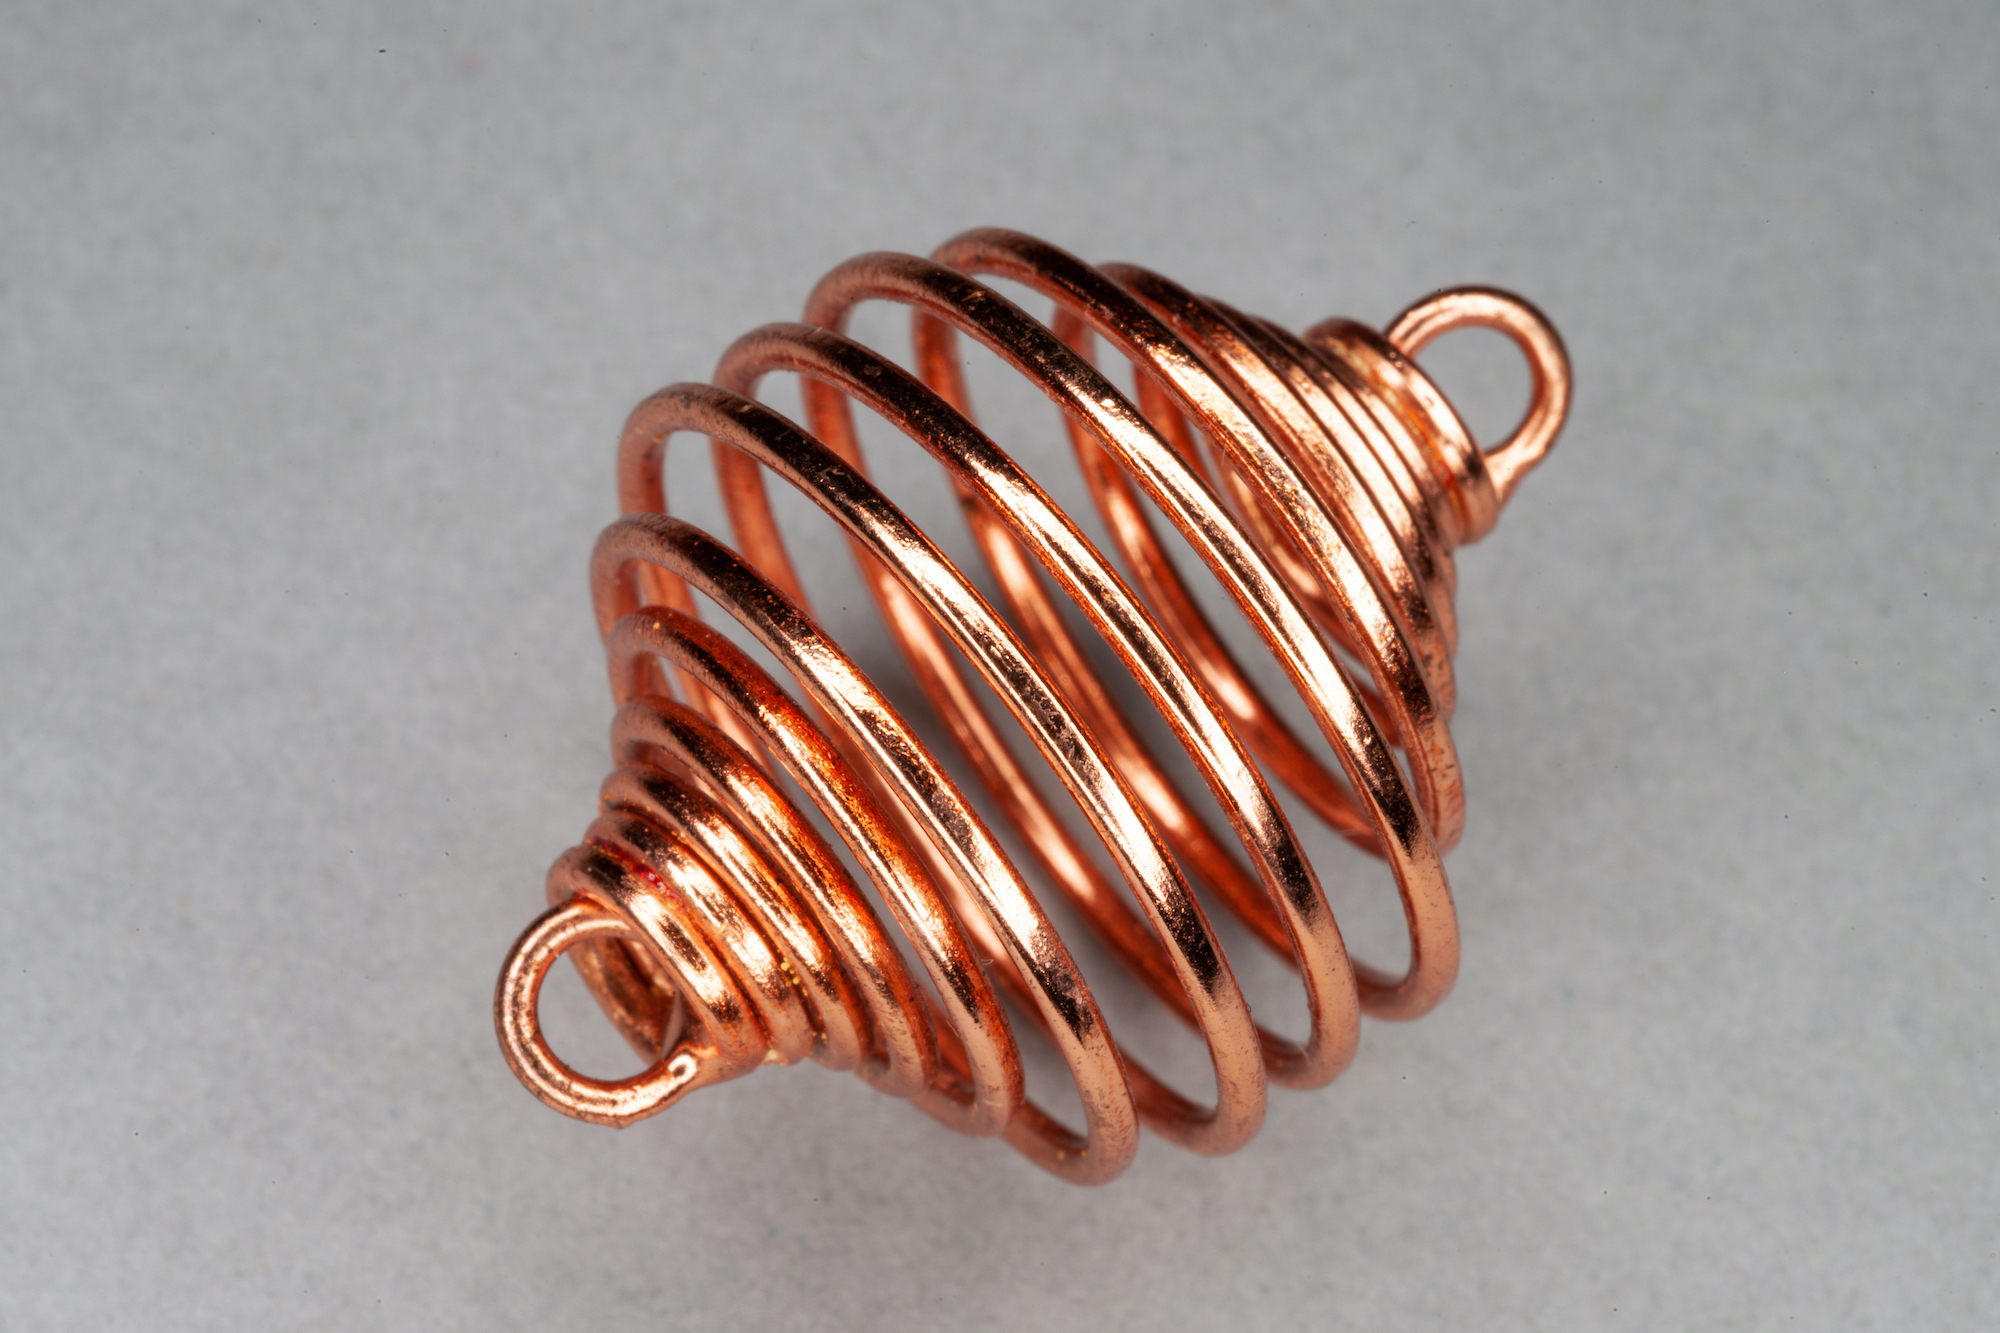 Copper Plated Spiral Metal Cage Bead, 2 End Loops 35x25mm